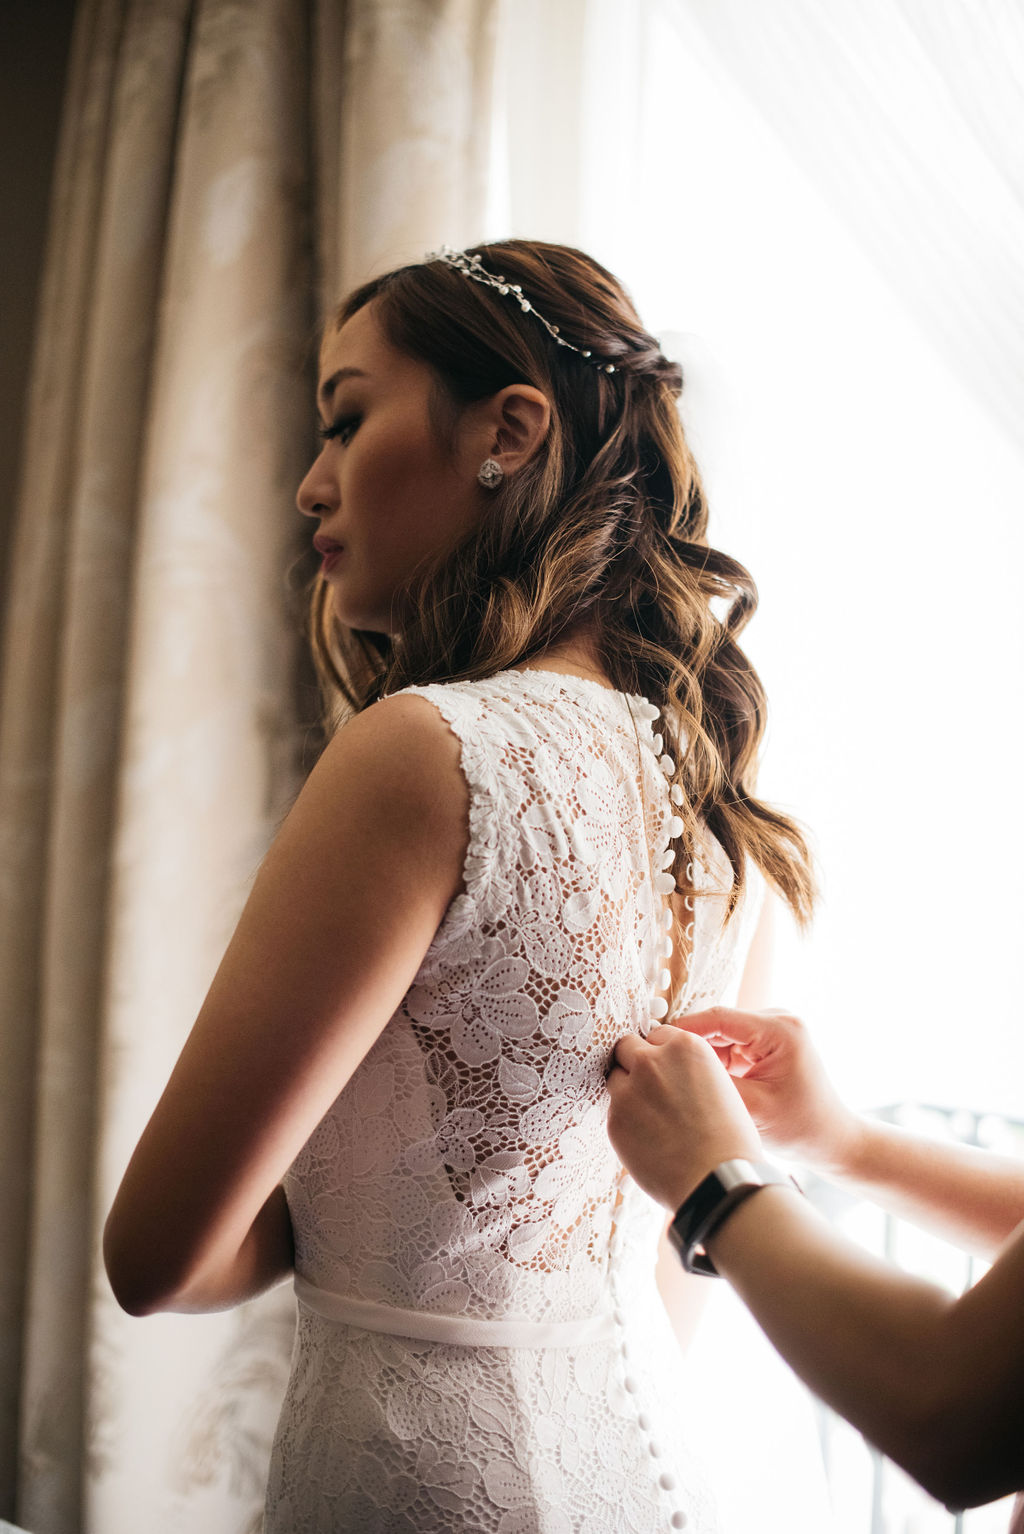 Bridal portait at Chiswick House, London | Sugar Plum Bakes